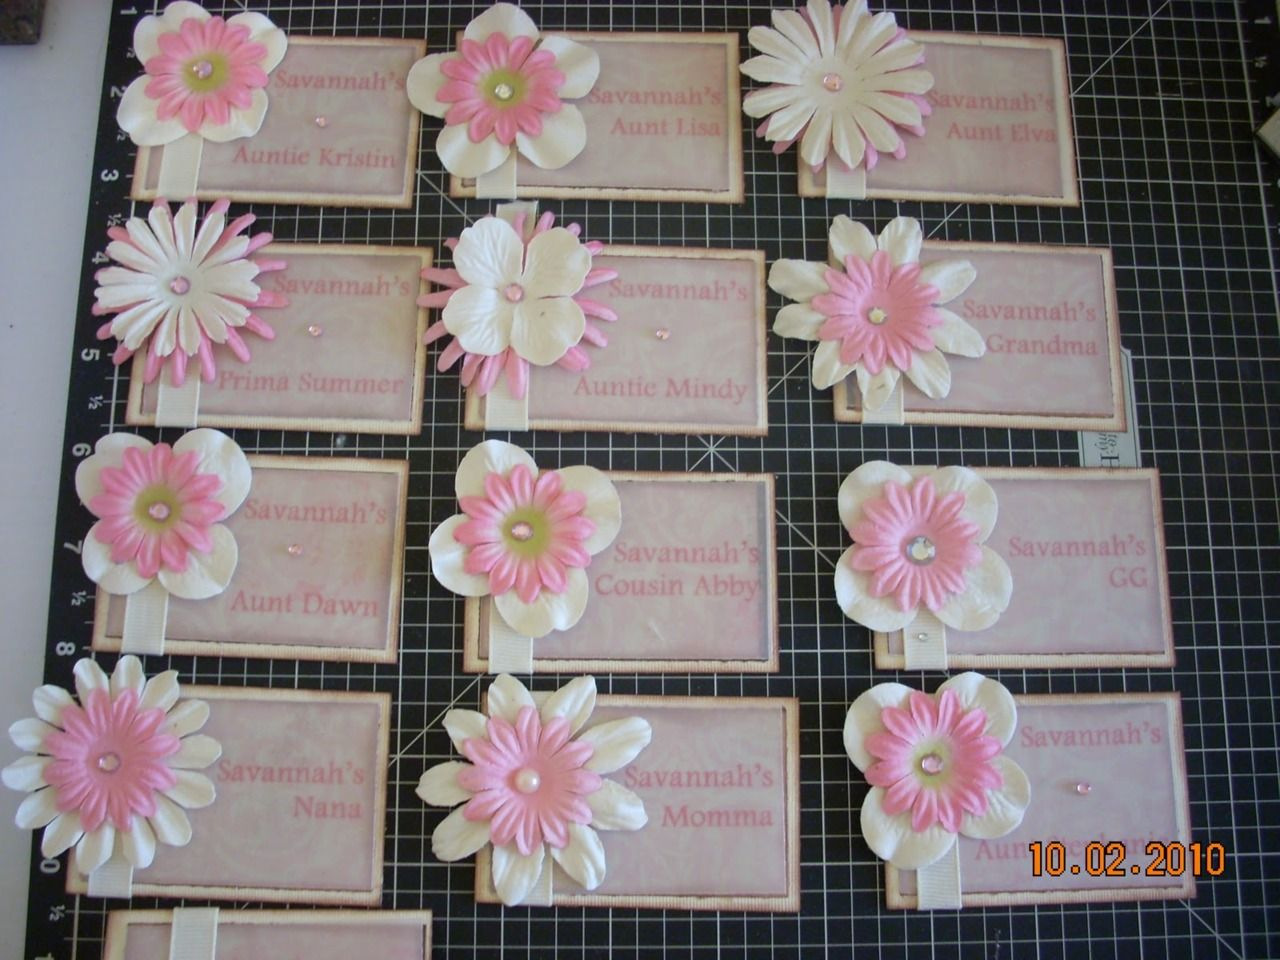 Pnm Name Tag Ideas Scrapbooking Paper Flowers Are Good Materials To